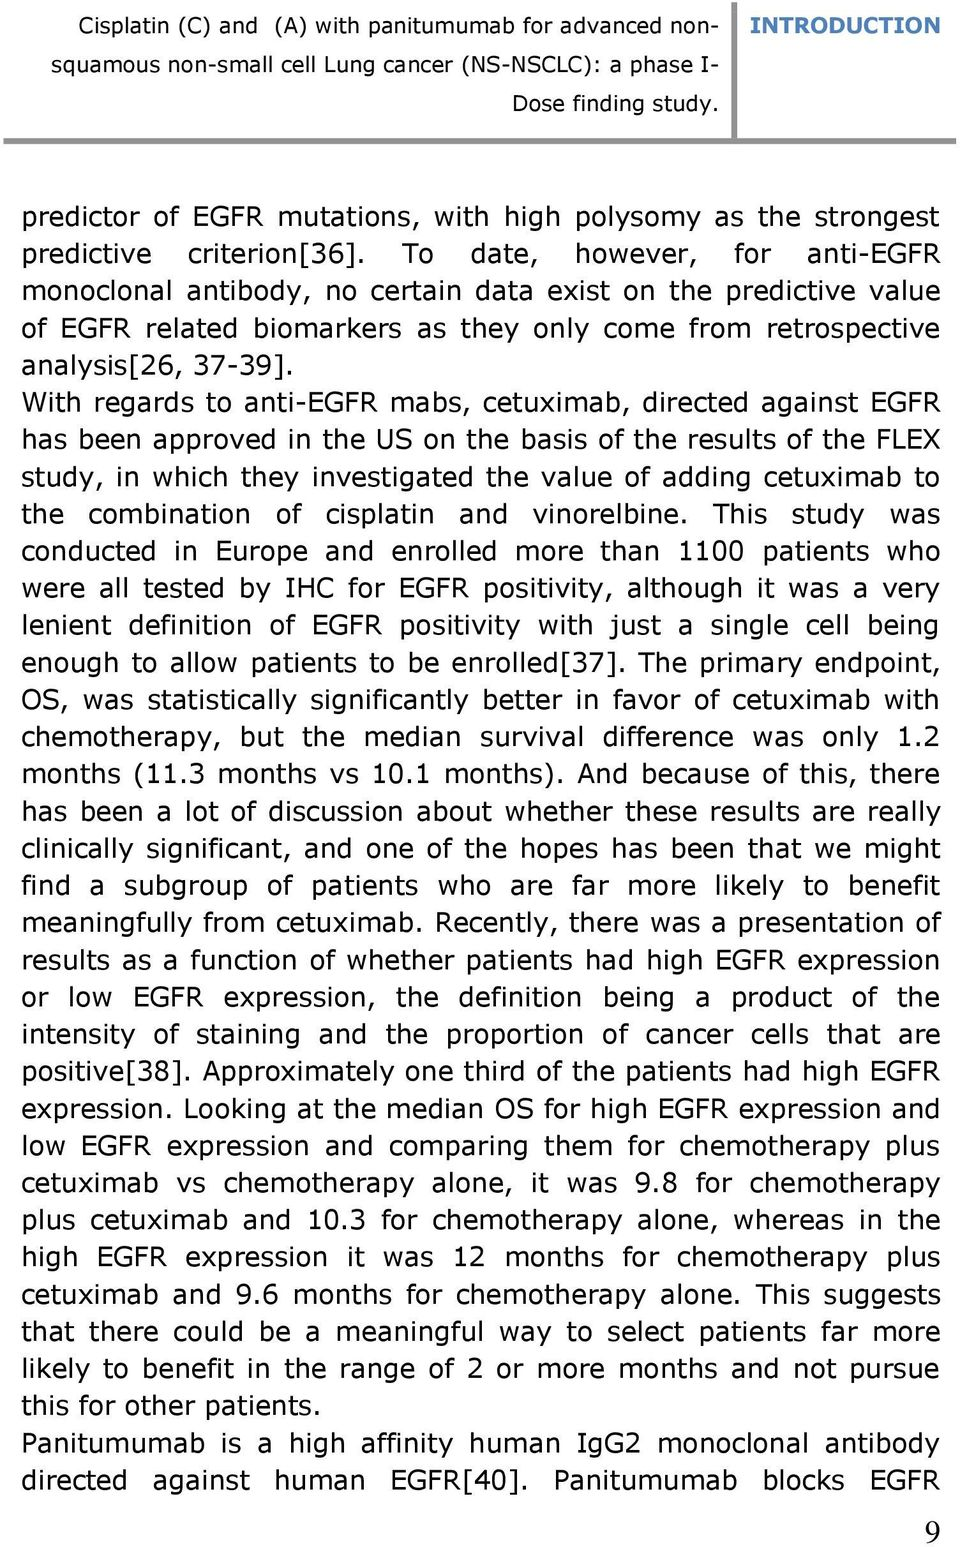 To date, however, for anti-egfr monoclonal antibody, no certain data exist on the predictive value of EGFR related biomarkers as they only come from retrospective analysis[26, 37-39].